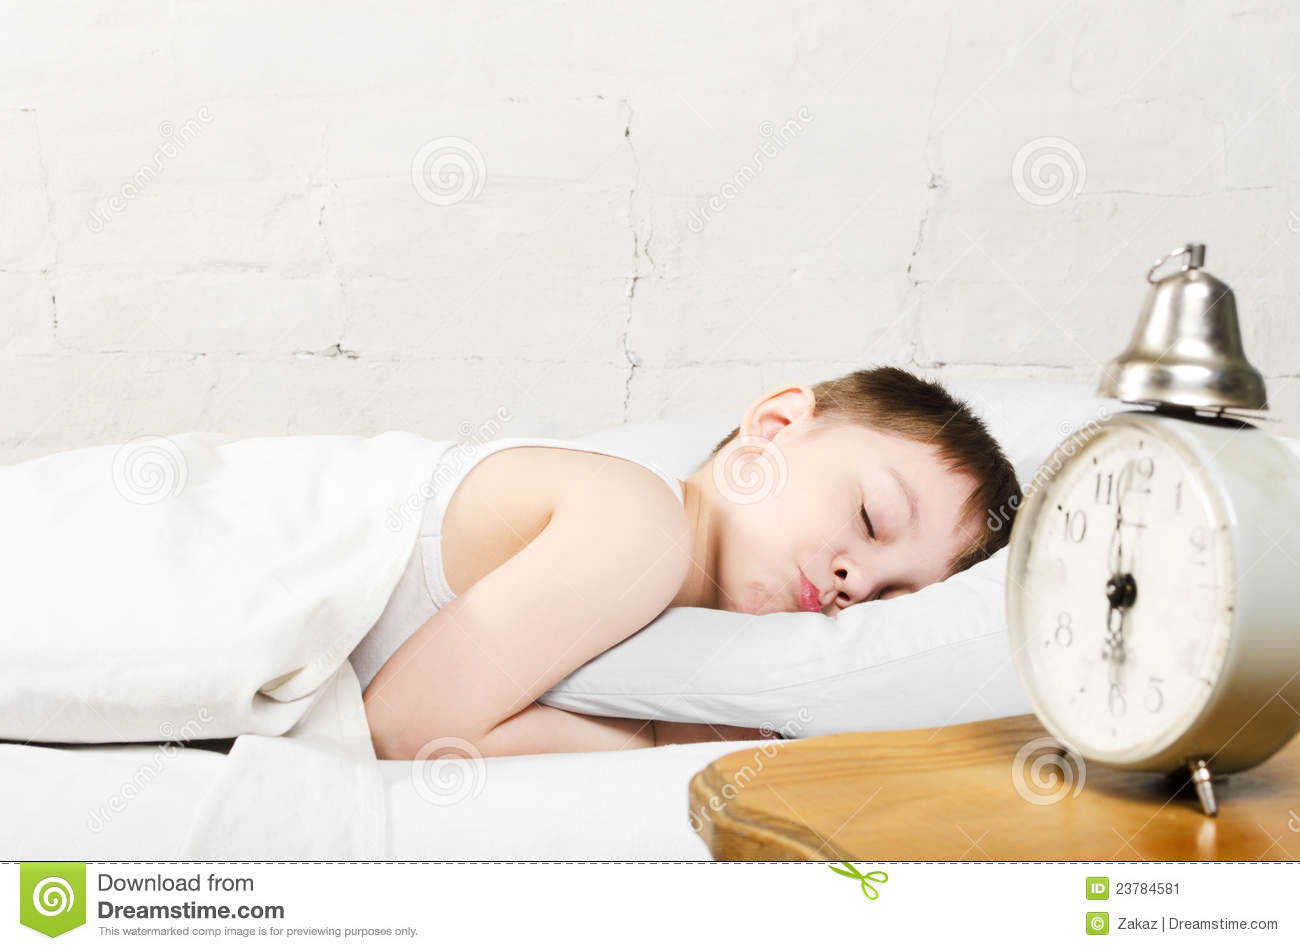 Boy Sleeping In Bed Stock Image - Image: 23784581